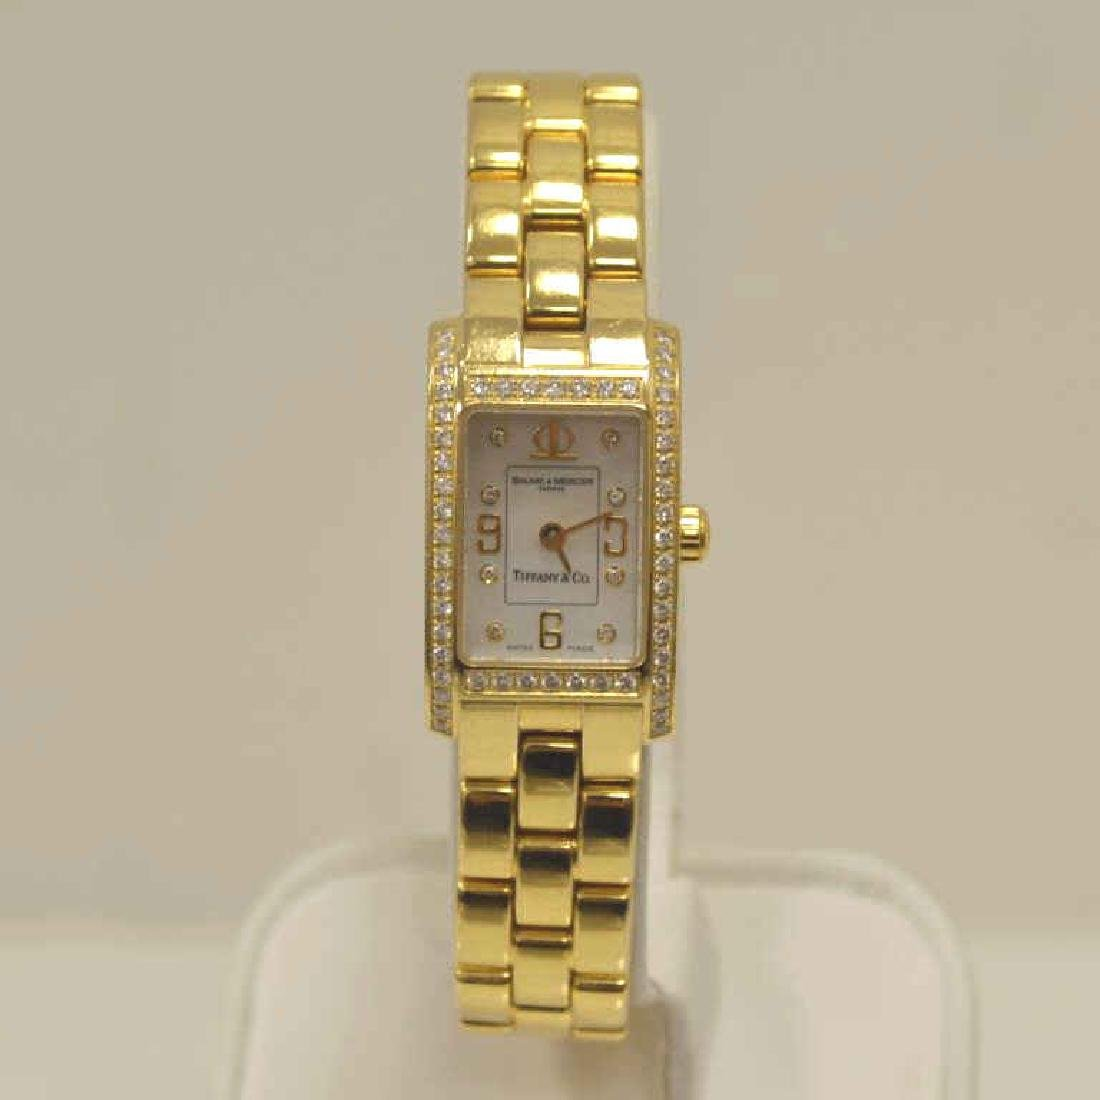 18kt Tiffany & Co., Baume & Mercier diamond watch